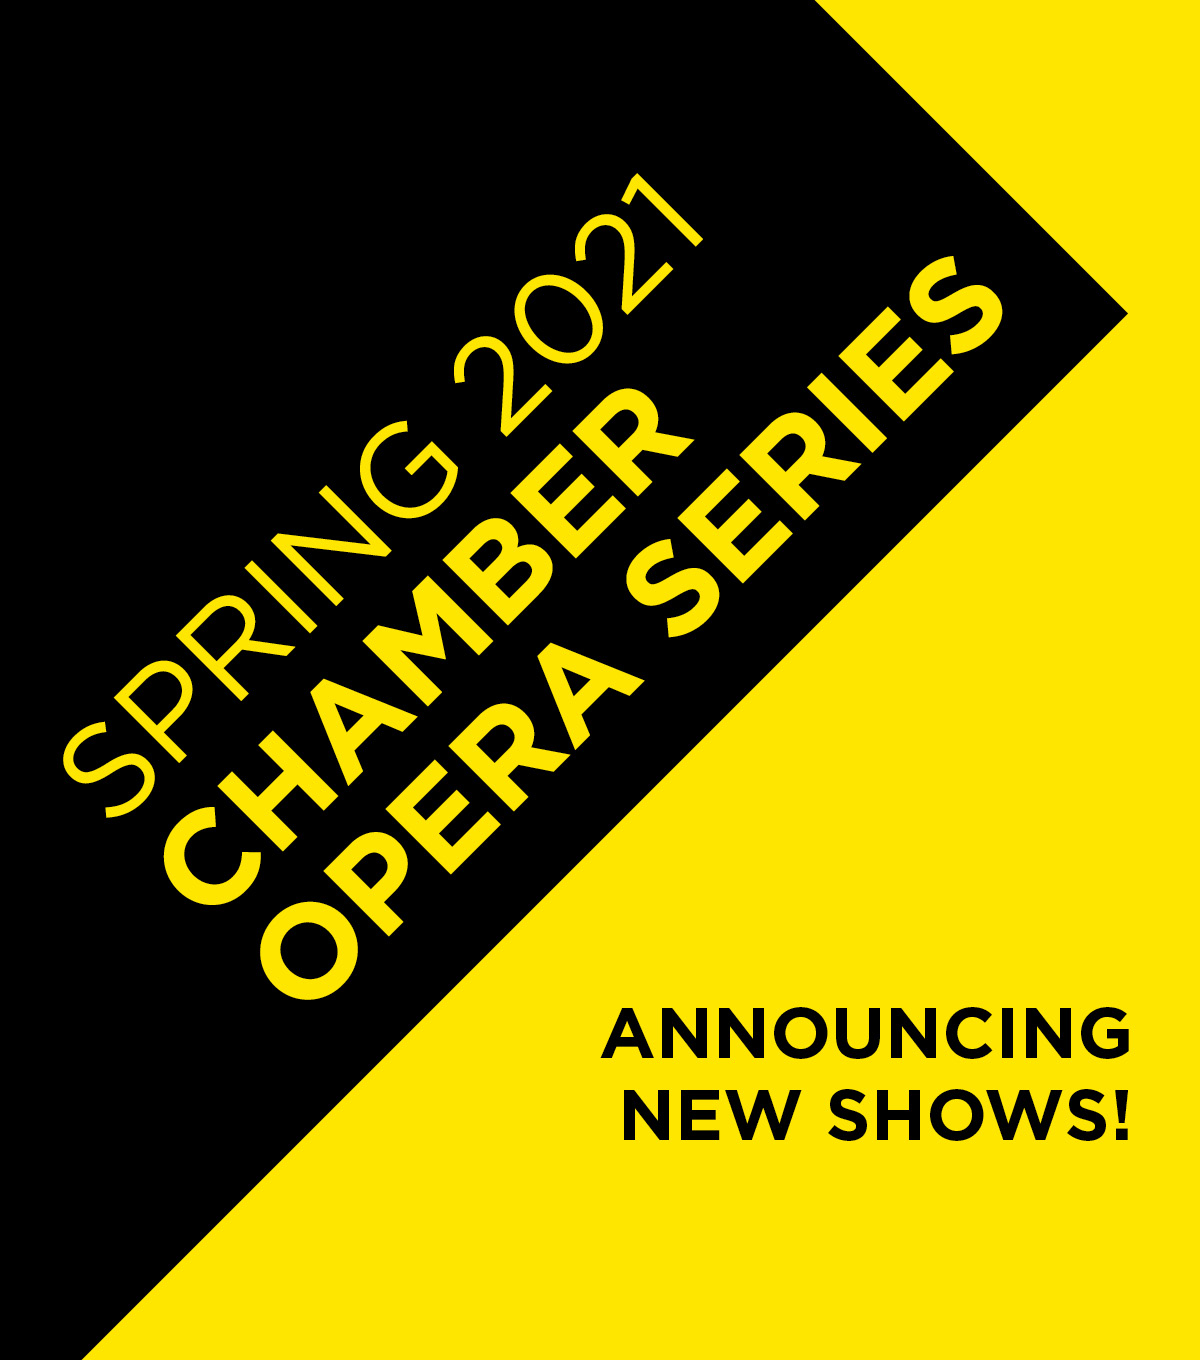 Spring 2021 Chamber Opera Series. Announcing new shows!